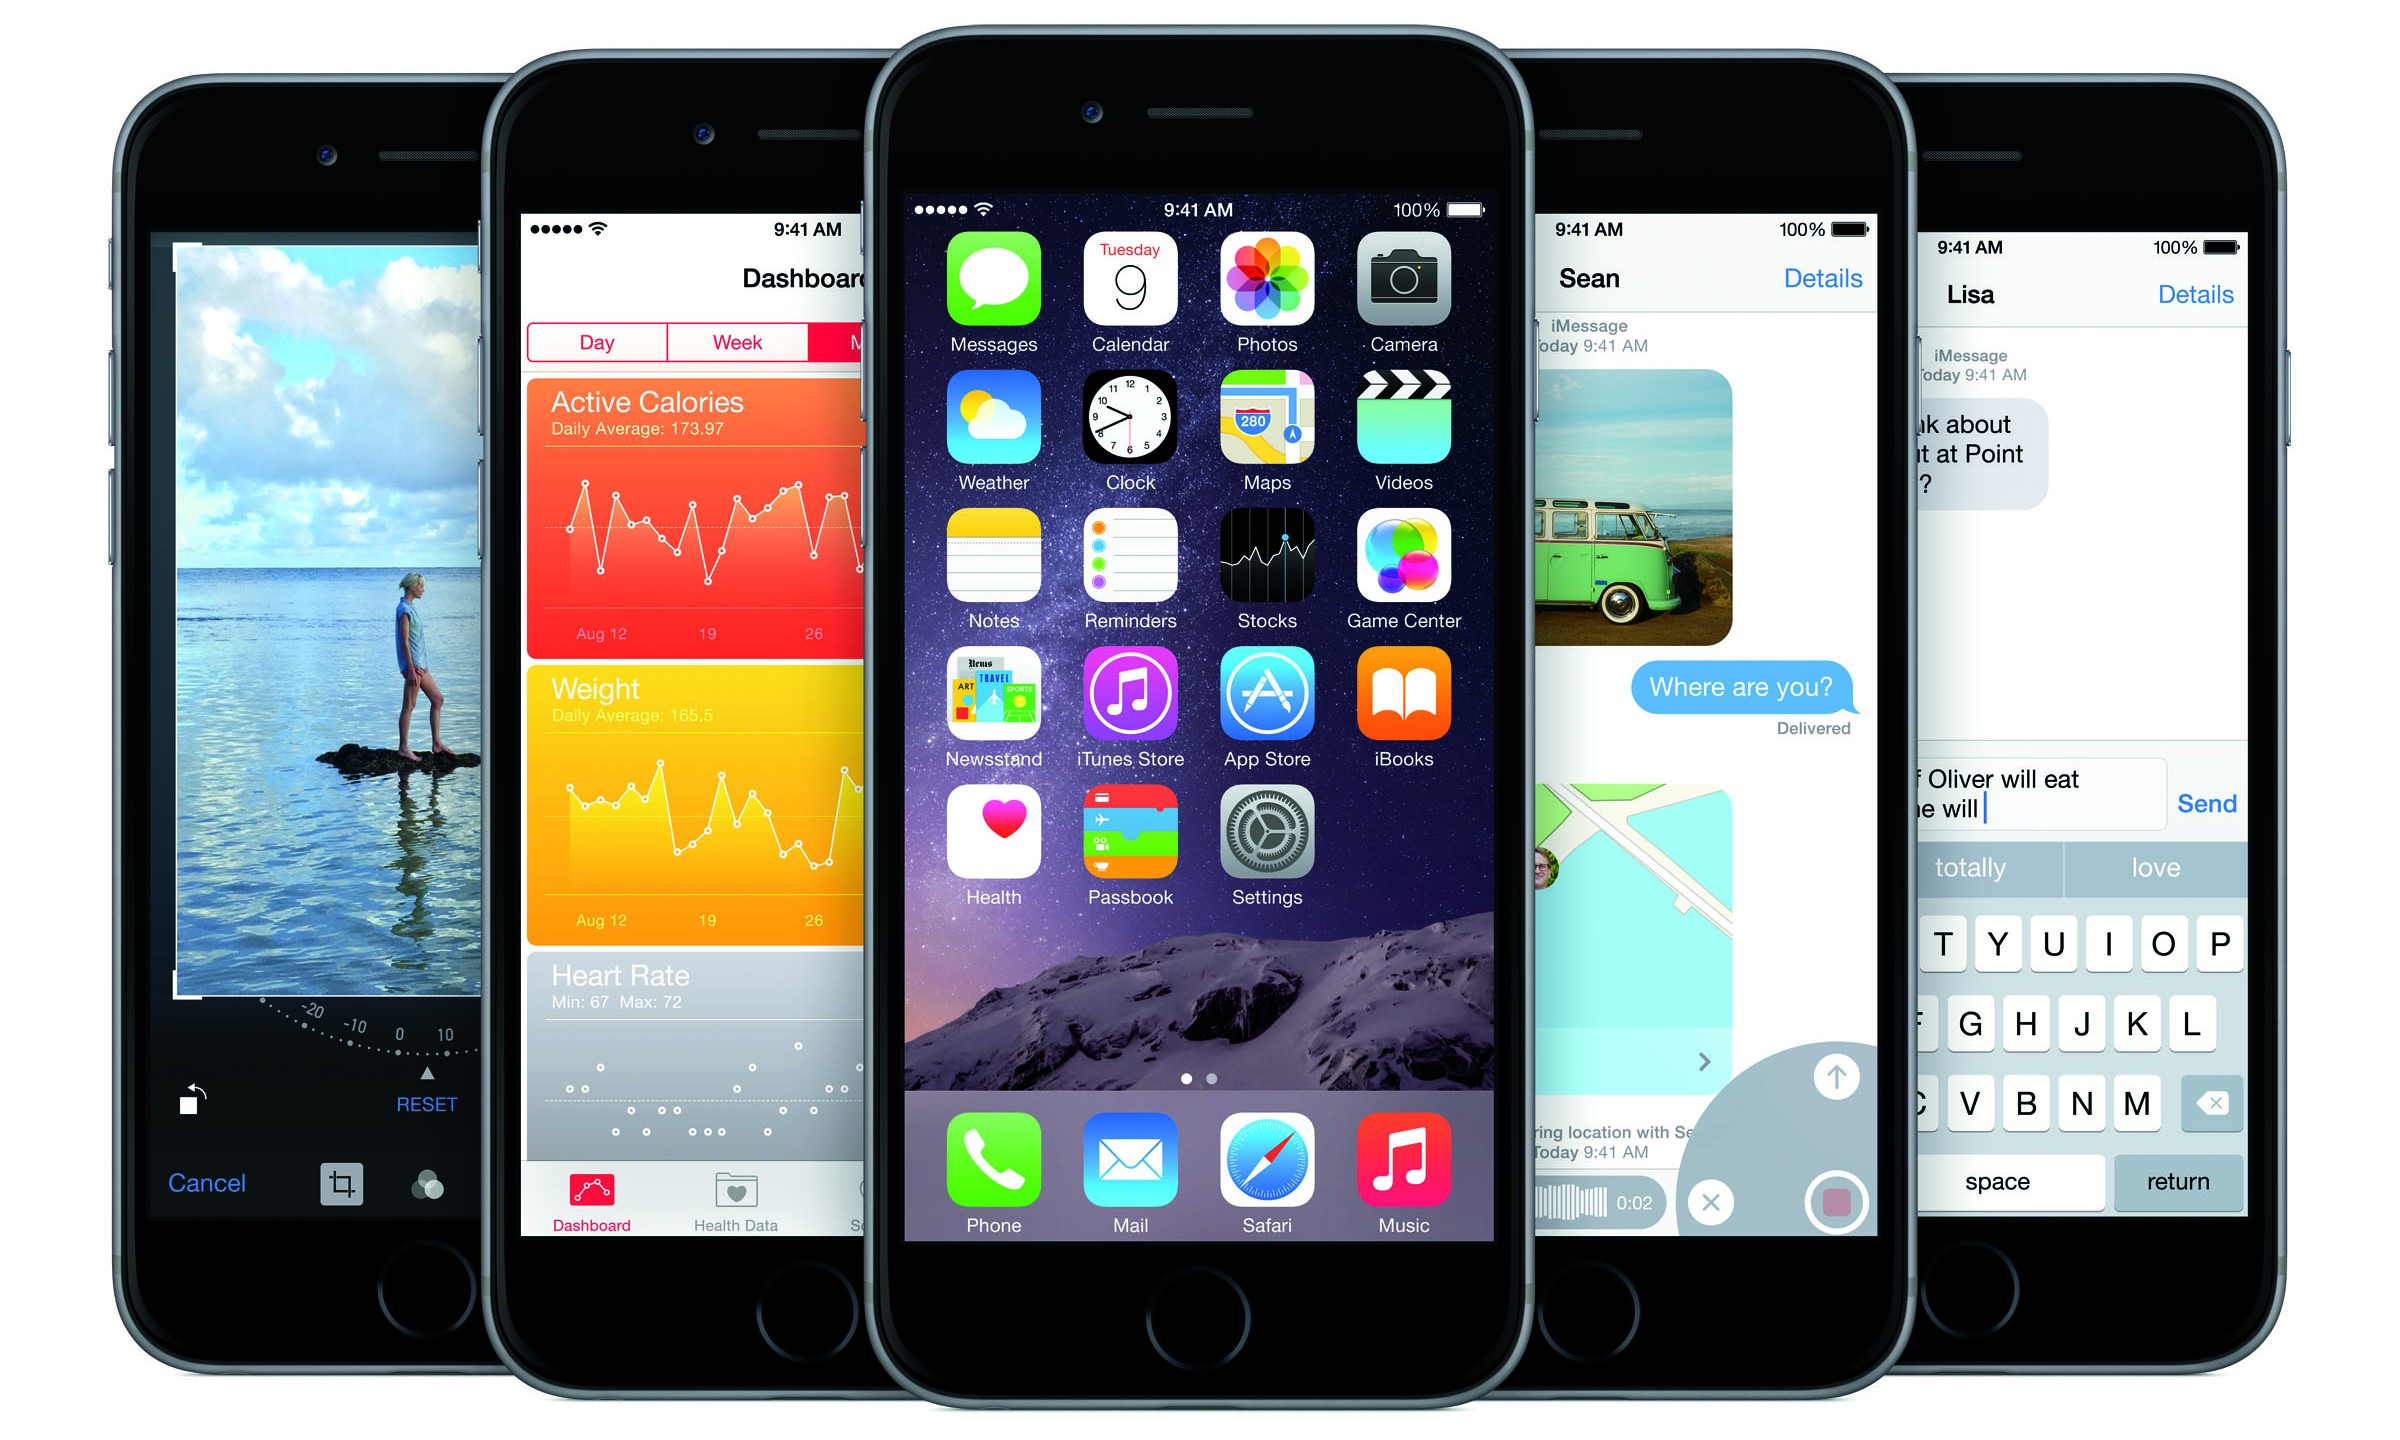 Apple unveiled two new iPhones, the iPhone 6 and iPhone 6 Plus, at their September 9, 2014 announcement. The phones are